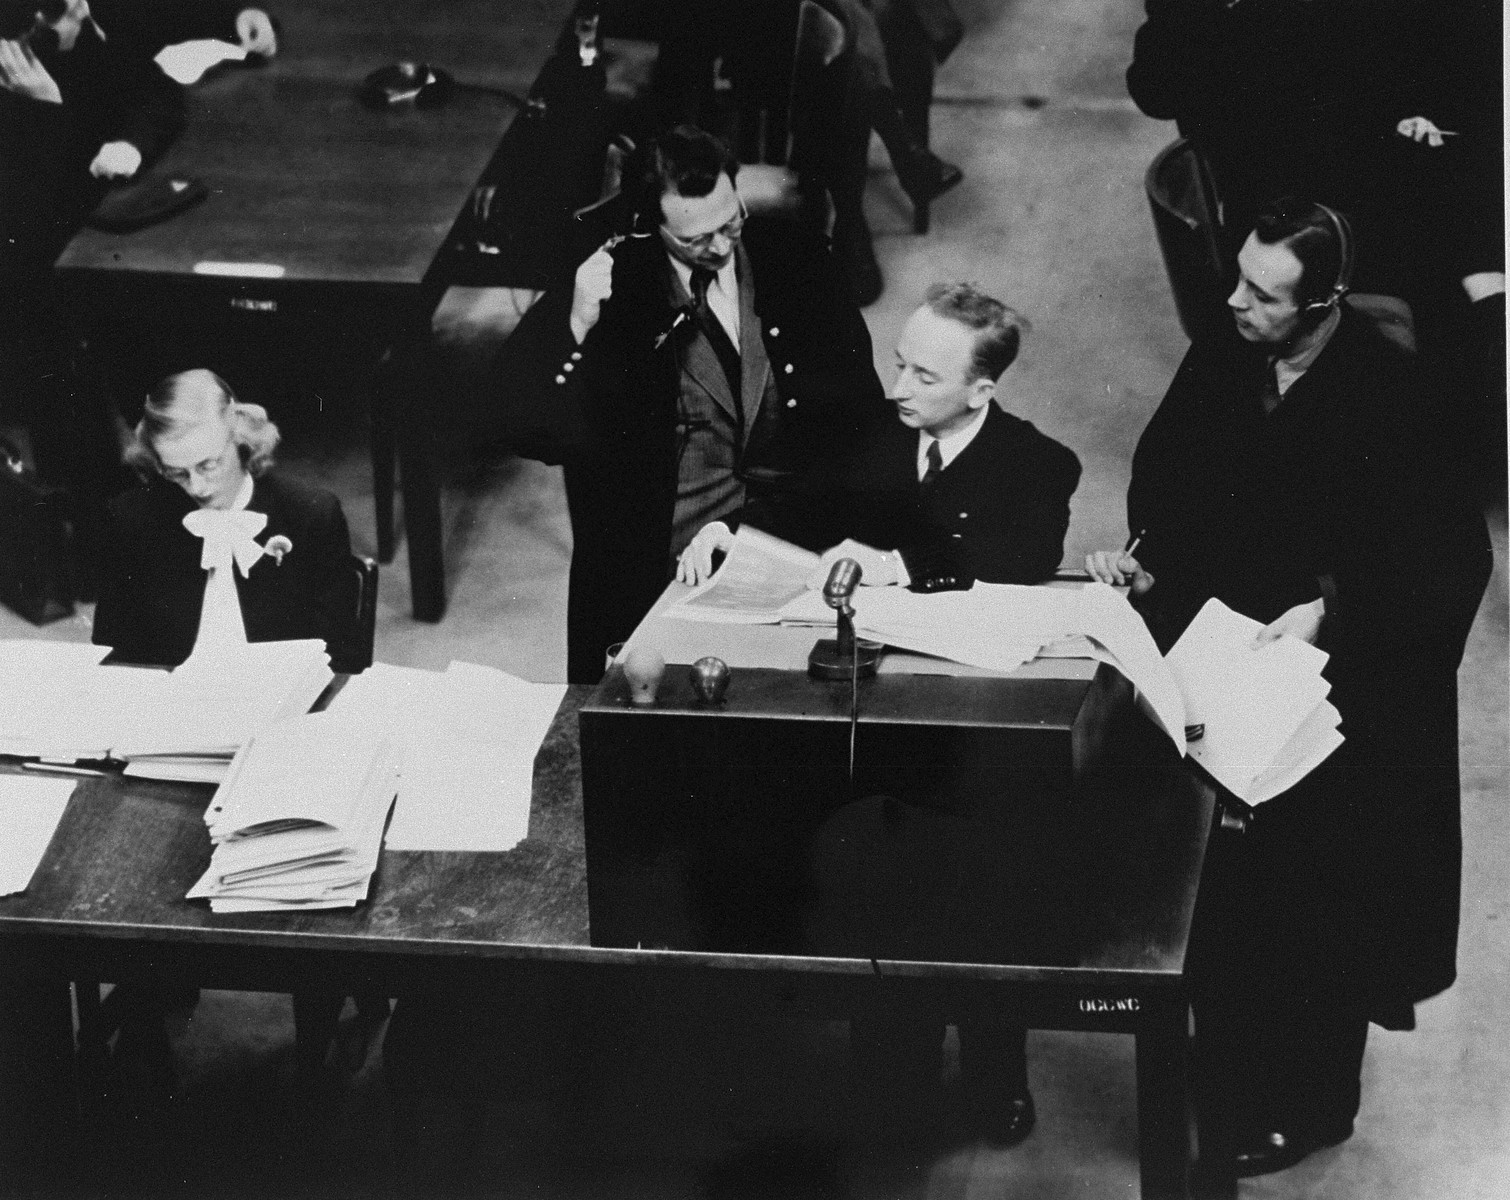 Chief prosecutor Benjamin Ferencz presents documents as evidence at the Einsatzgruppen Trial.    Ferencz is flanked by German defense lawyers, Dr. Friedrich Bergold (right, counsel for Ernst Biberstein) and Dr. Rudolf Aschenauer (left, counsel for Otto Ohlendorf), who are protesting the introduction of the documents as evidence.